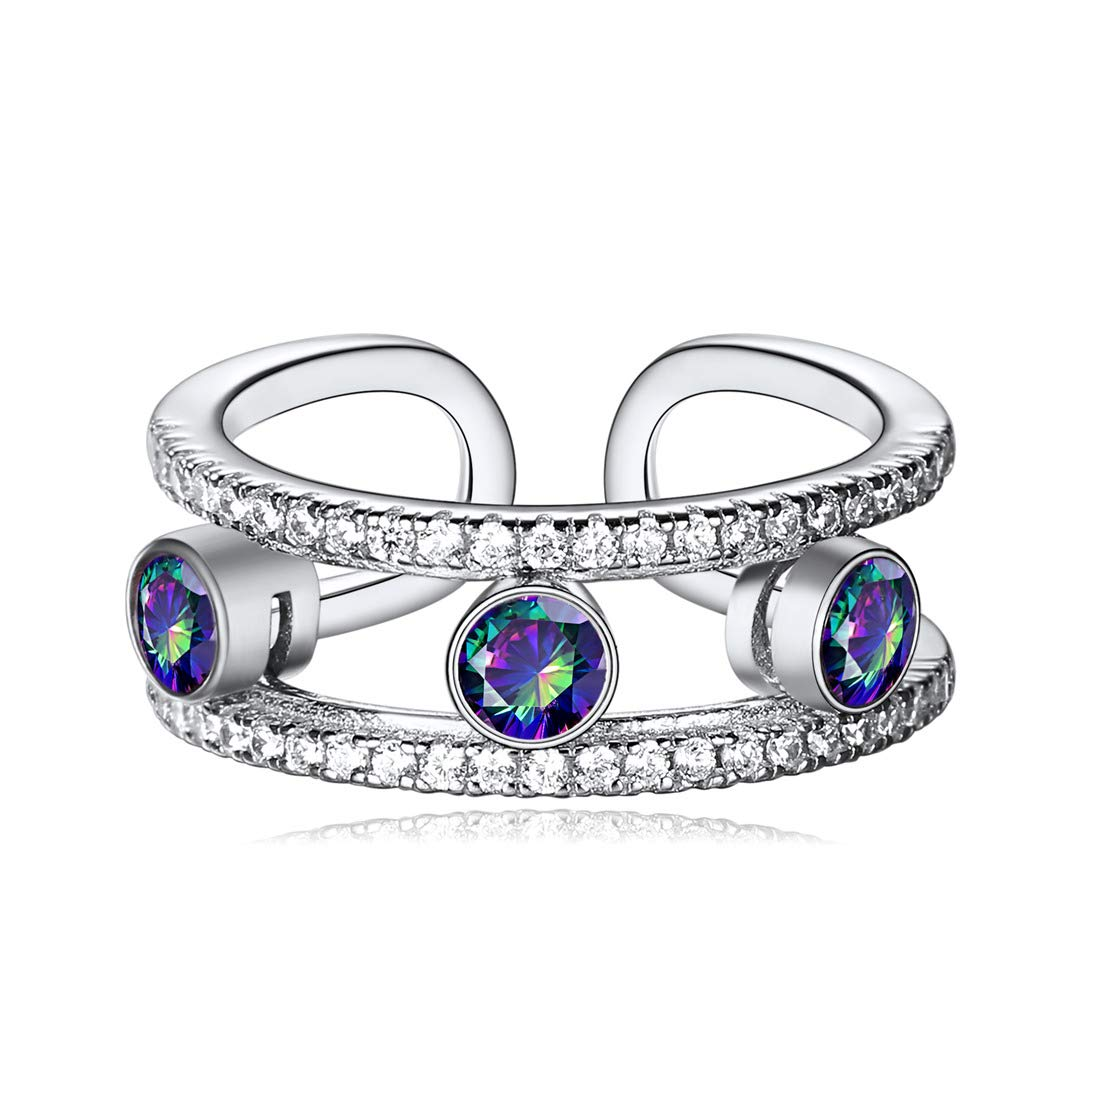 ChicSilver 925 Sterling Silver Cubic Zirconia Created Mystic Rainbow Topaz Ring Eternity Bands Halo Engagement Promise Rings